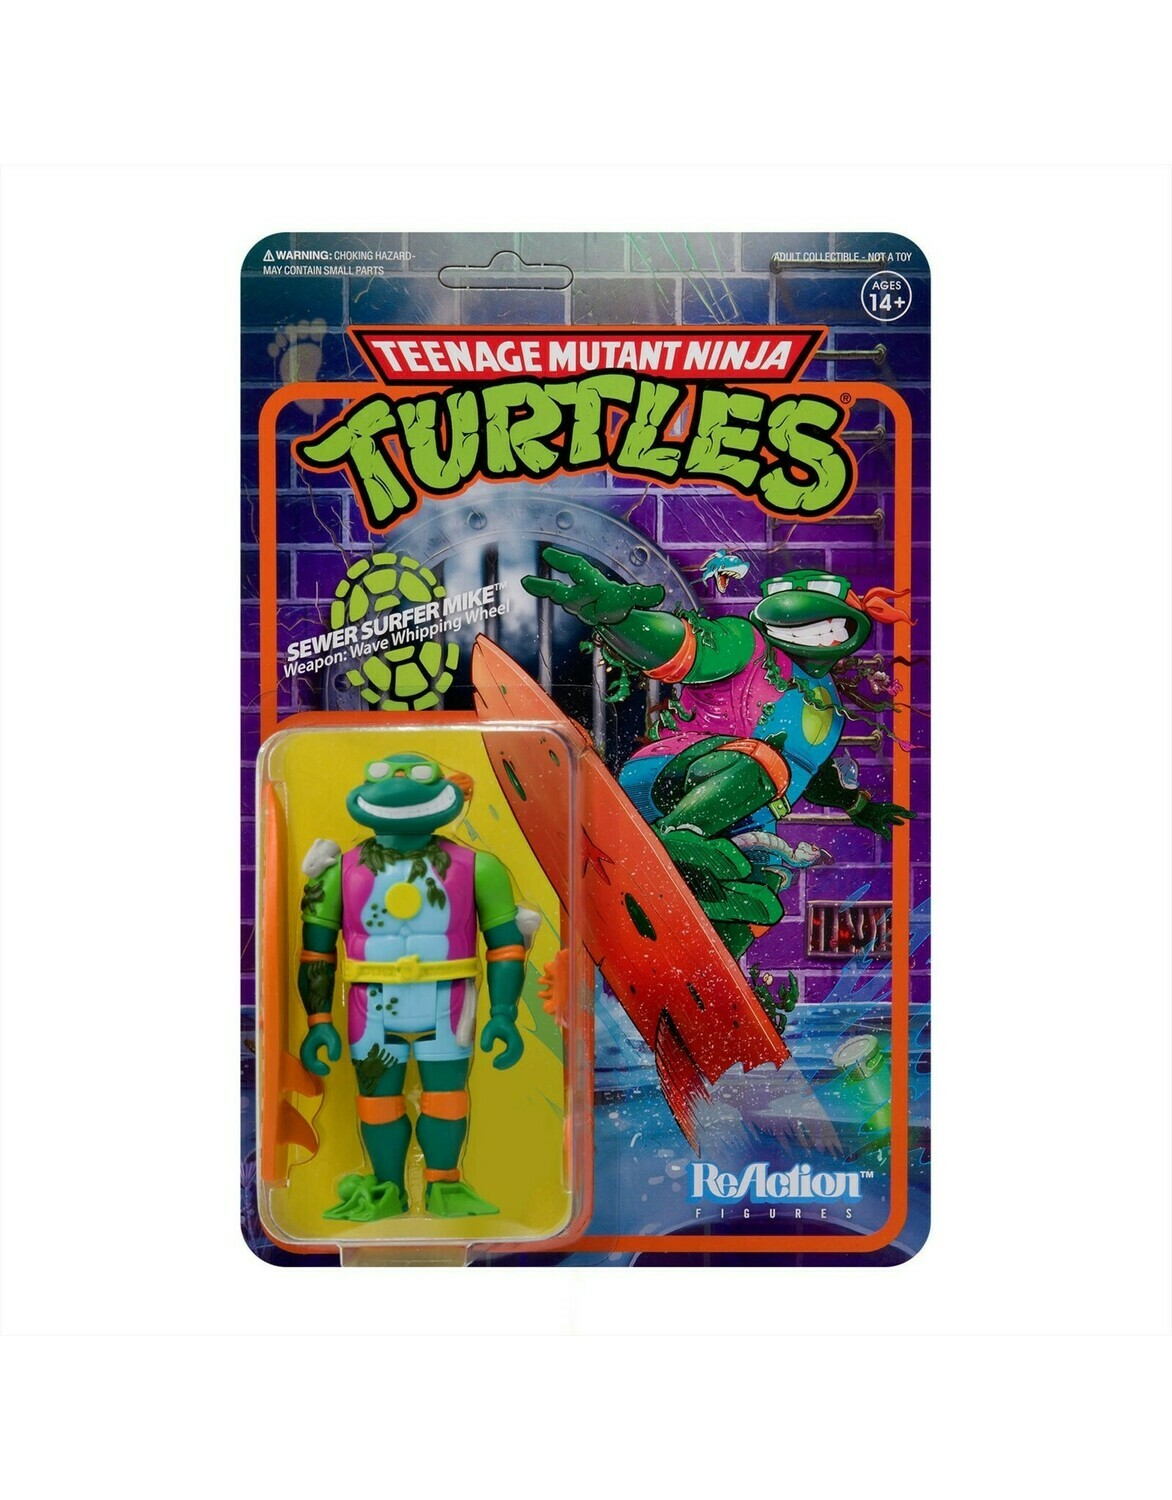 TMNT ReAction Sewer Surfer Mike